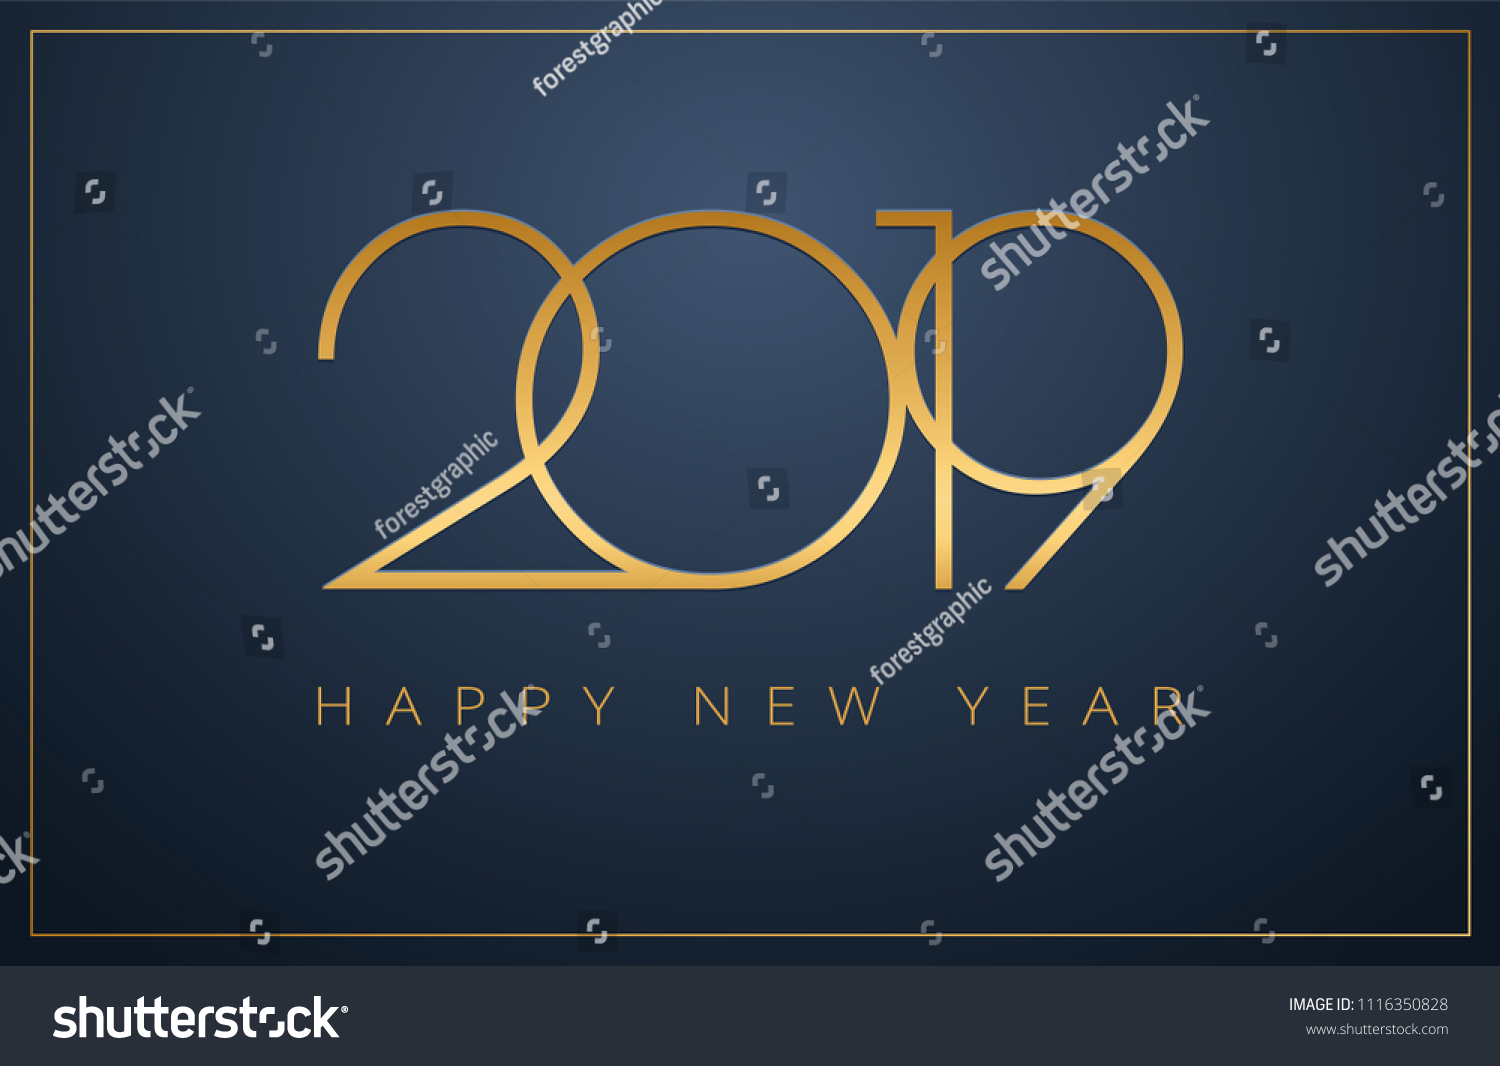 Classy 2019 happy new year background stock vector royalty free classy 2019 happy new year background golden design for christmas and new year 2019 greeting m4hsunfo